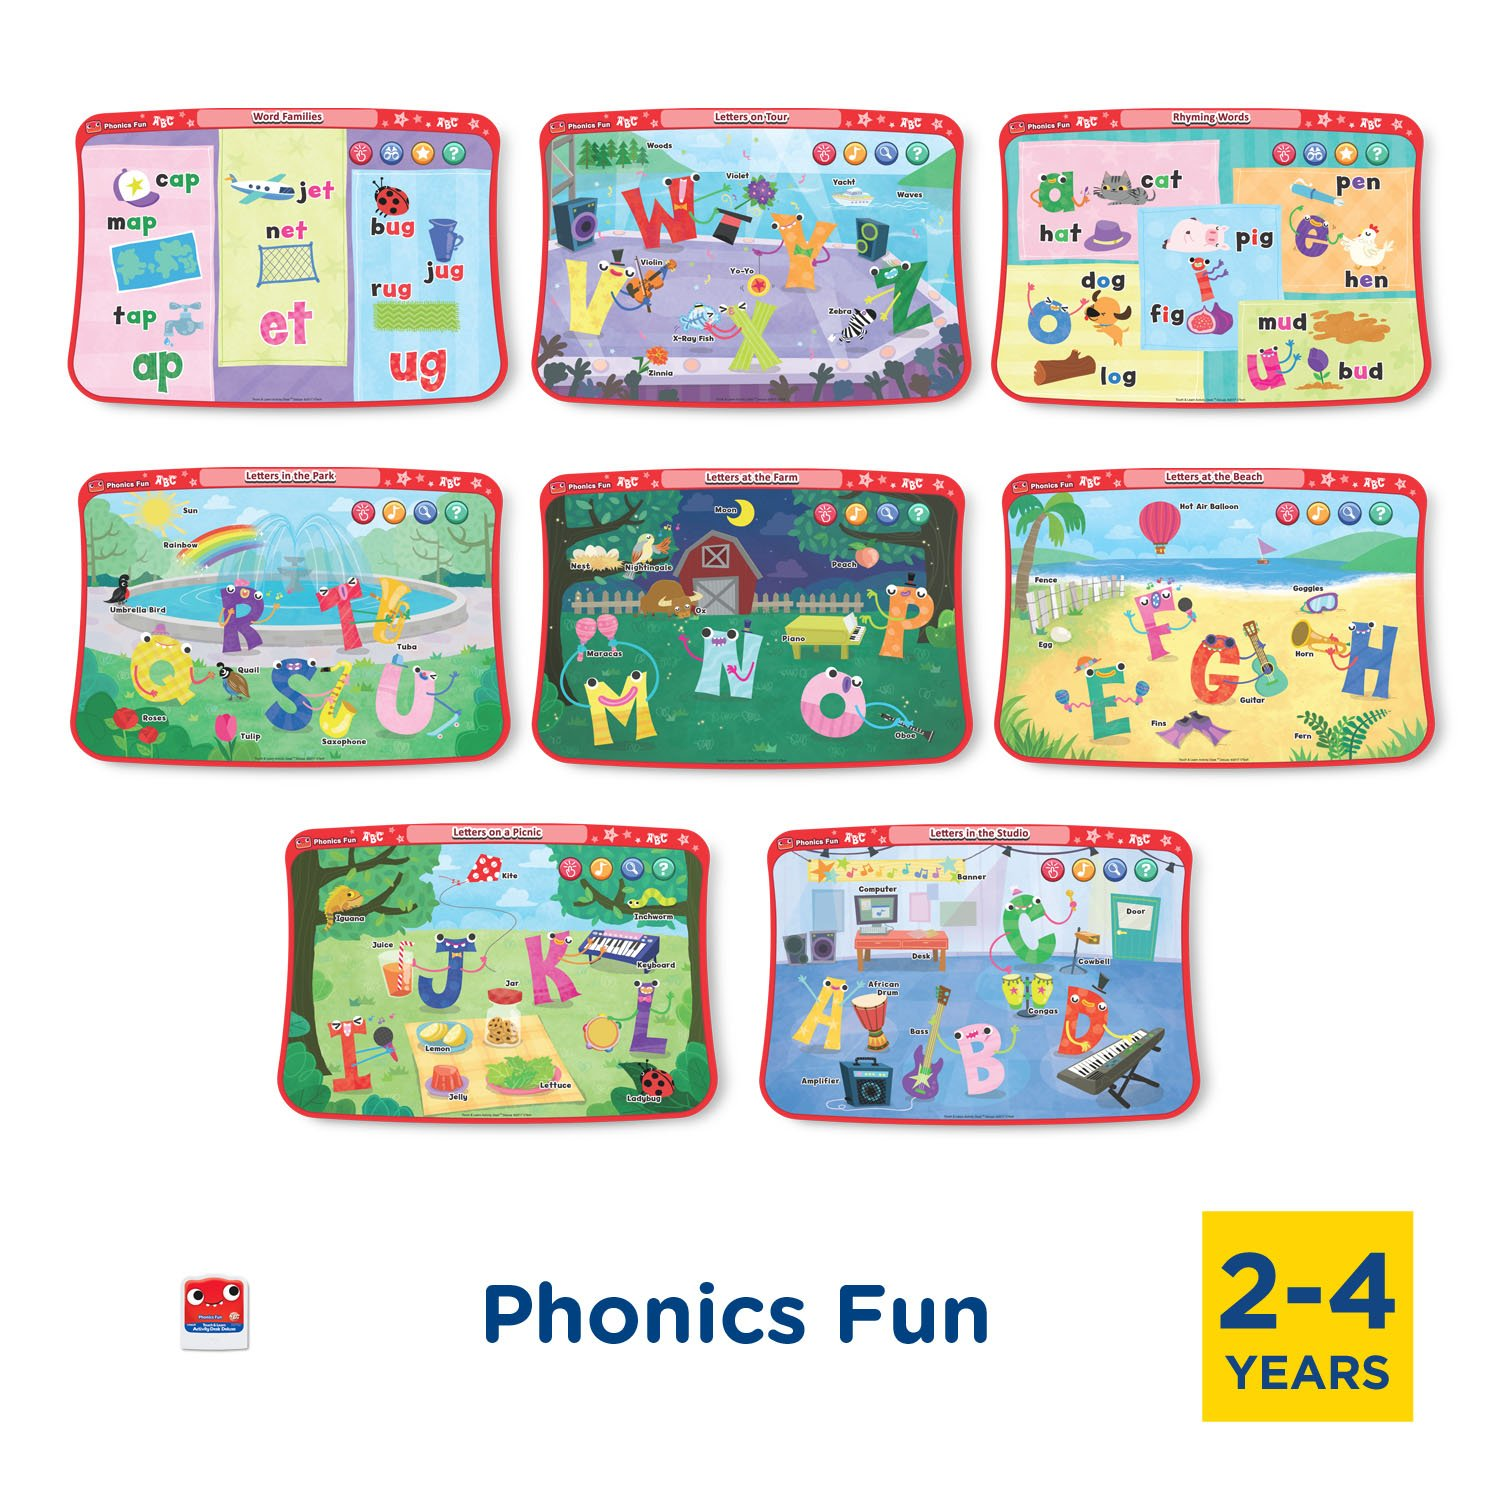 VTech Touch & Learn Activity Desk Deluxe 2-in-1 Preschool Bundle Expansion Pack for Age 2-4 by VTech (Image #3)